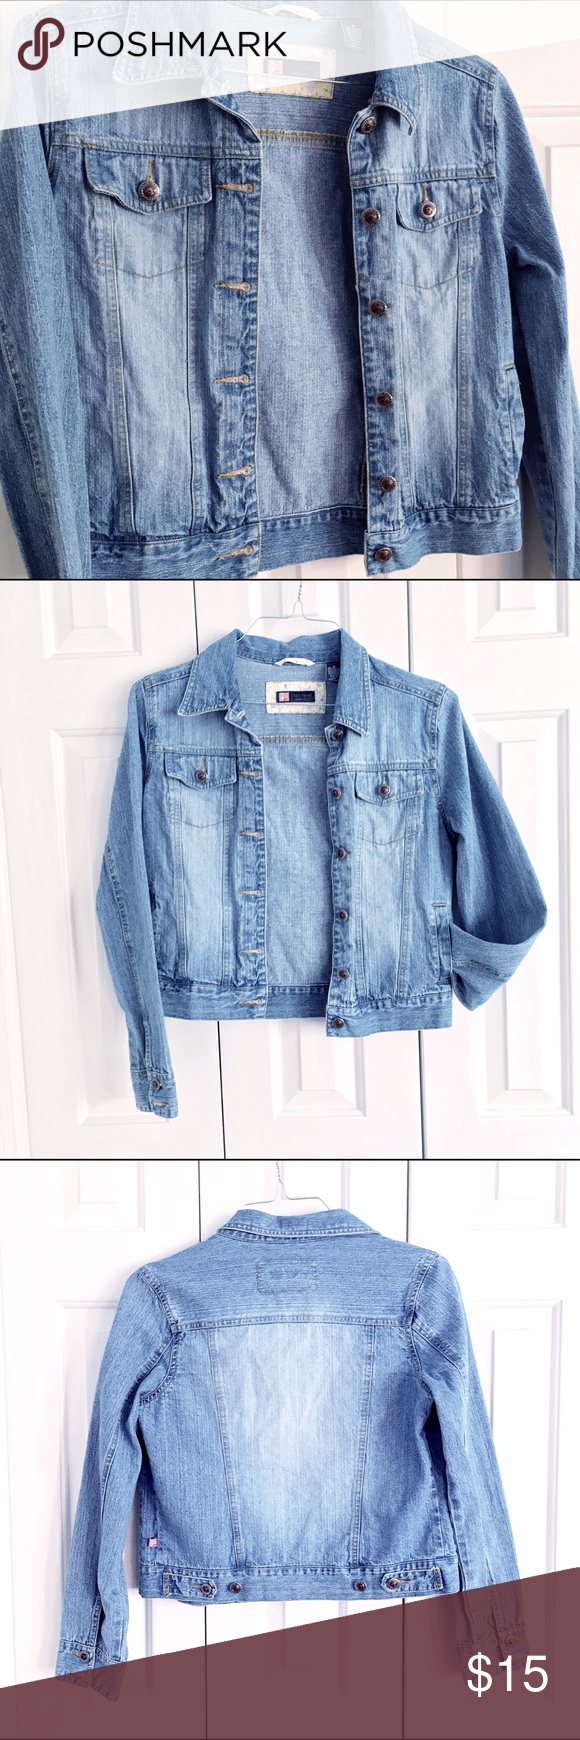 Classic Jean Jacket Classic jean jacket in excellent condition. A wardrobe staple! Duck Head Jeans Co Jackets & Coats Jean Jackets